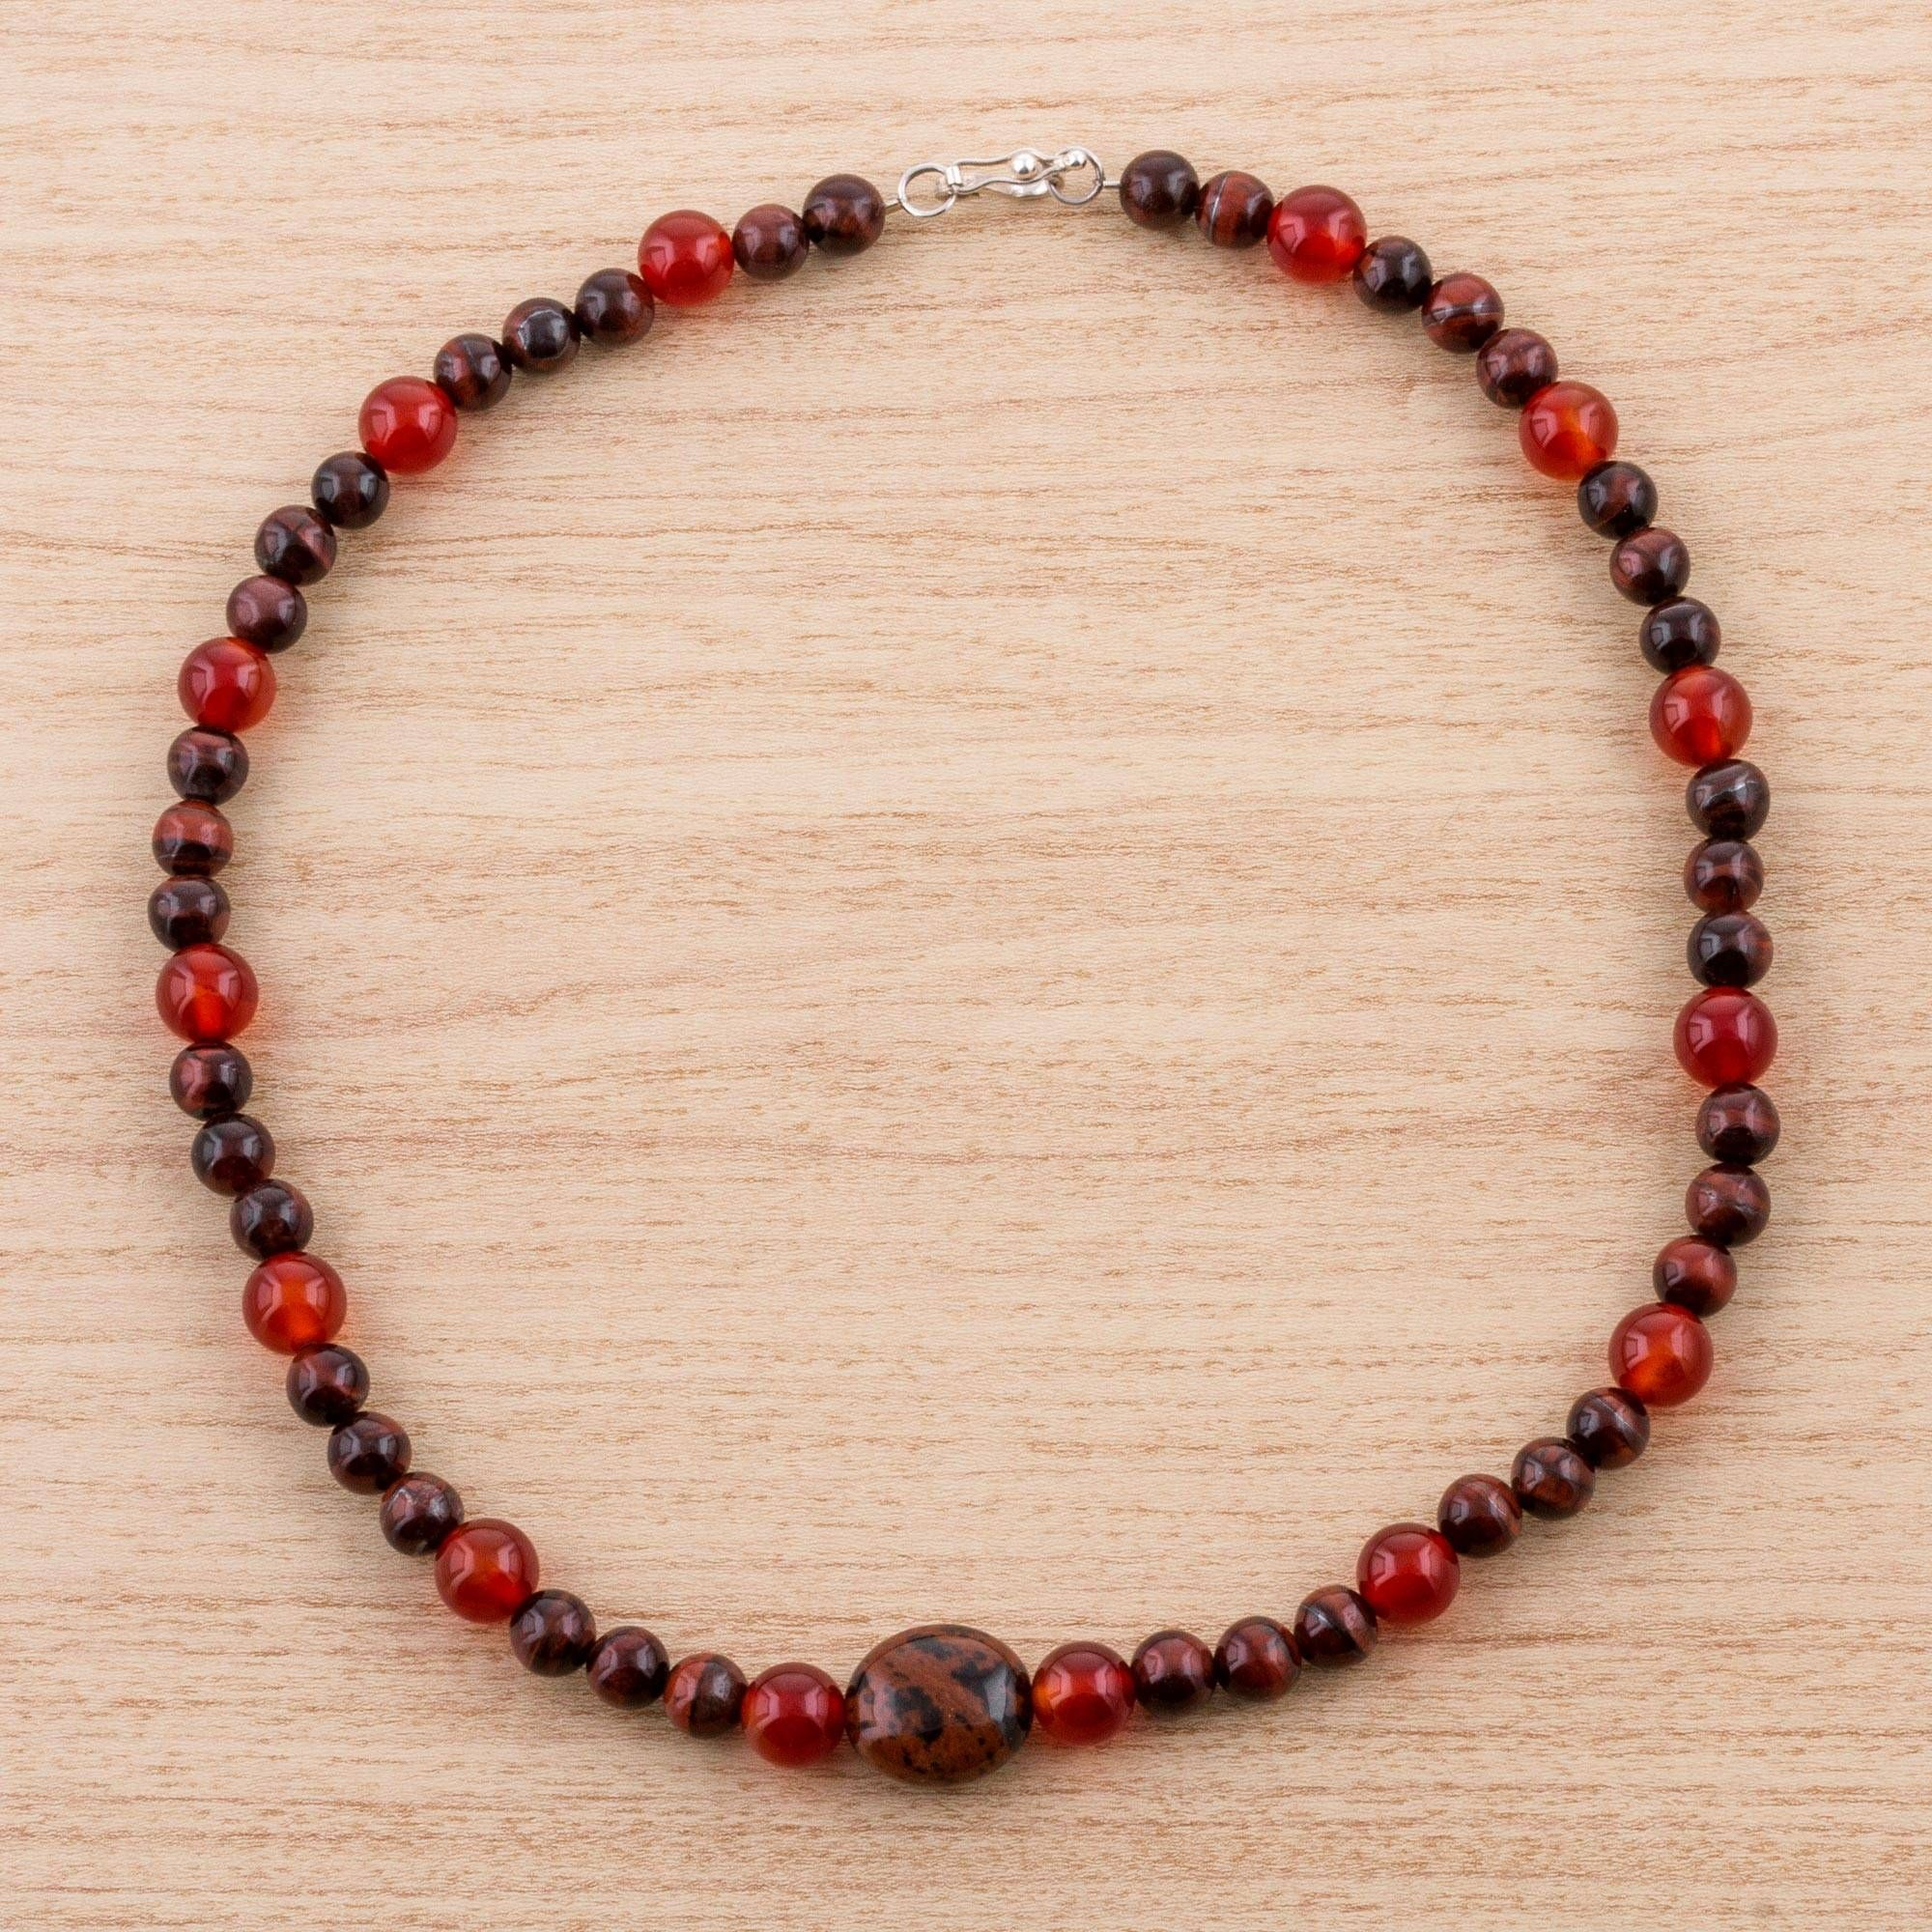 Obsidian Tigers Eye And Carnelian Beaded Pendant Necklace, Red Sensuality